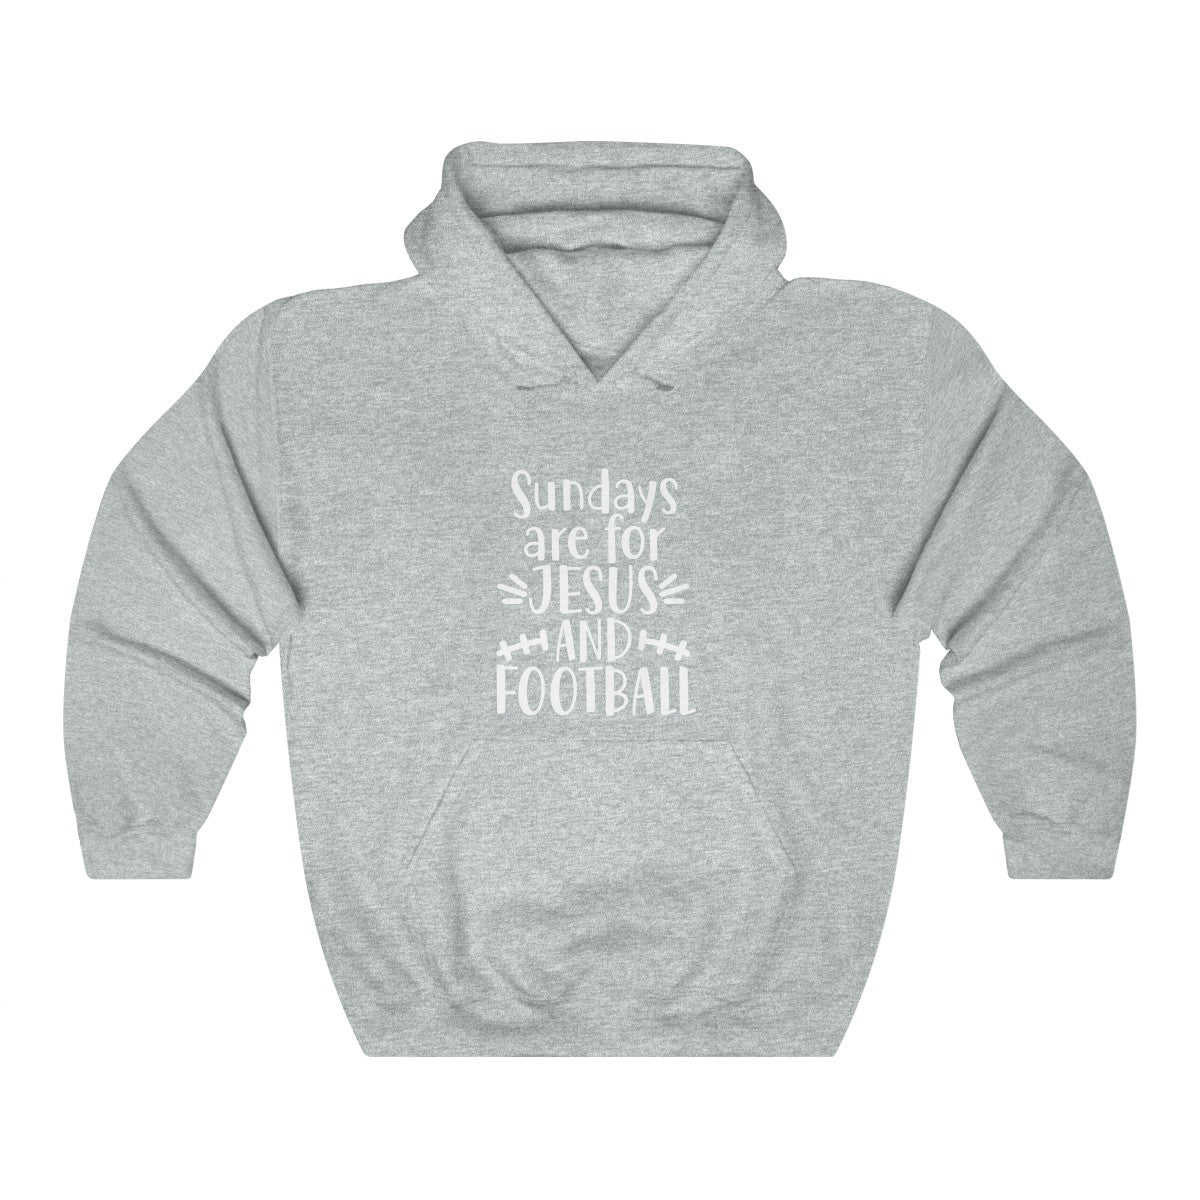 Sundays are for Jesus and Football Unisex Heavy Blend Hooded Sweatshirt